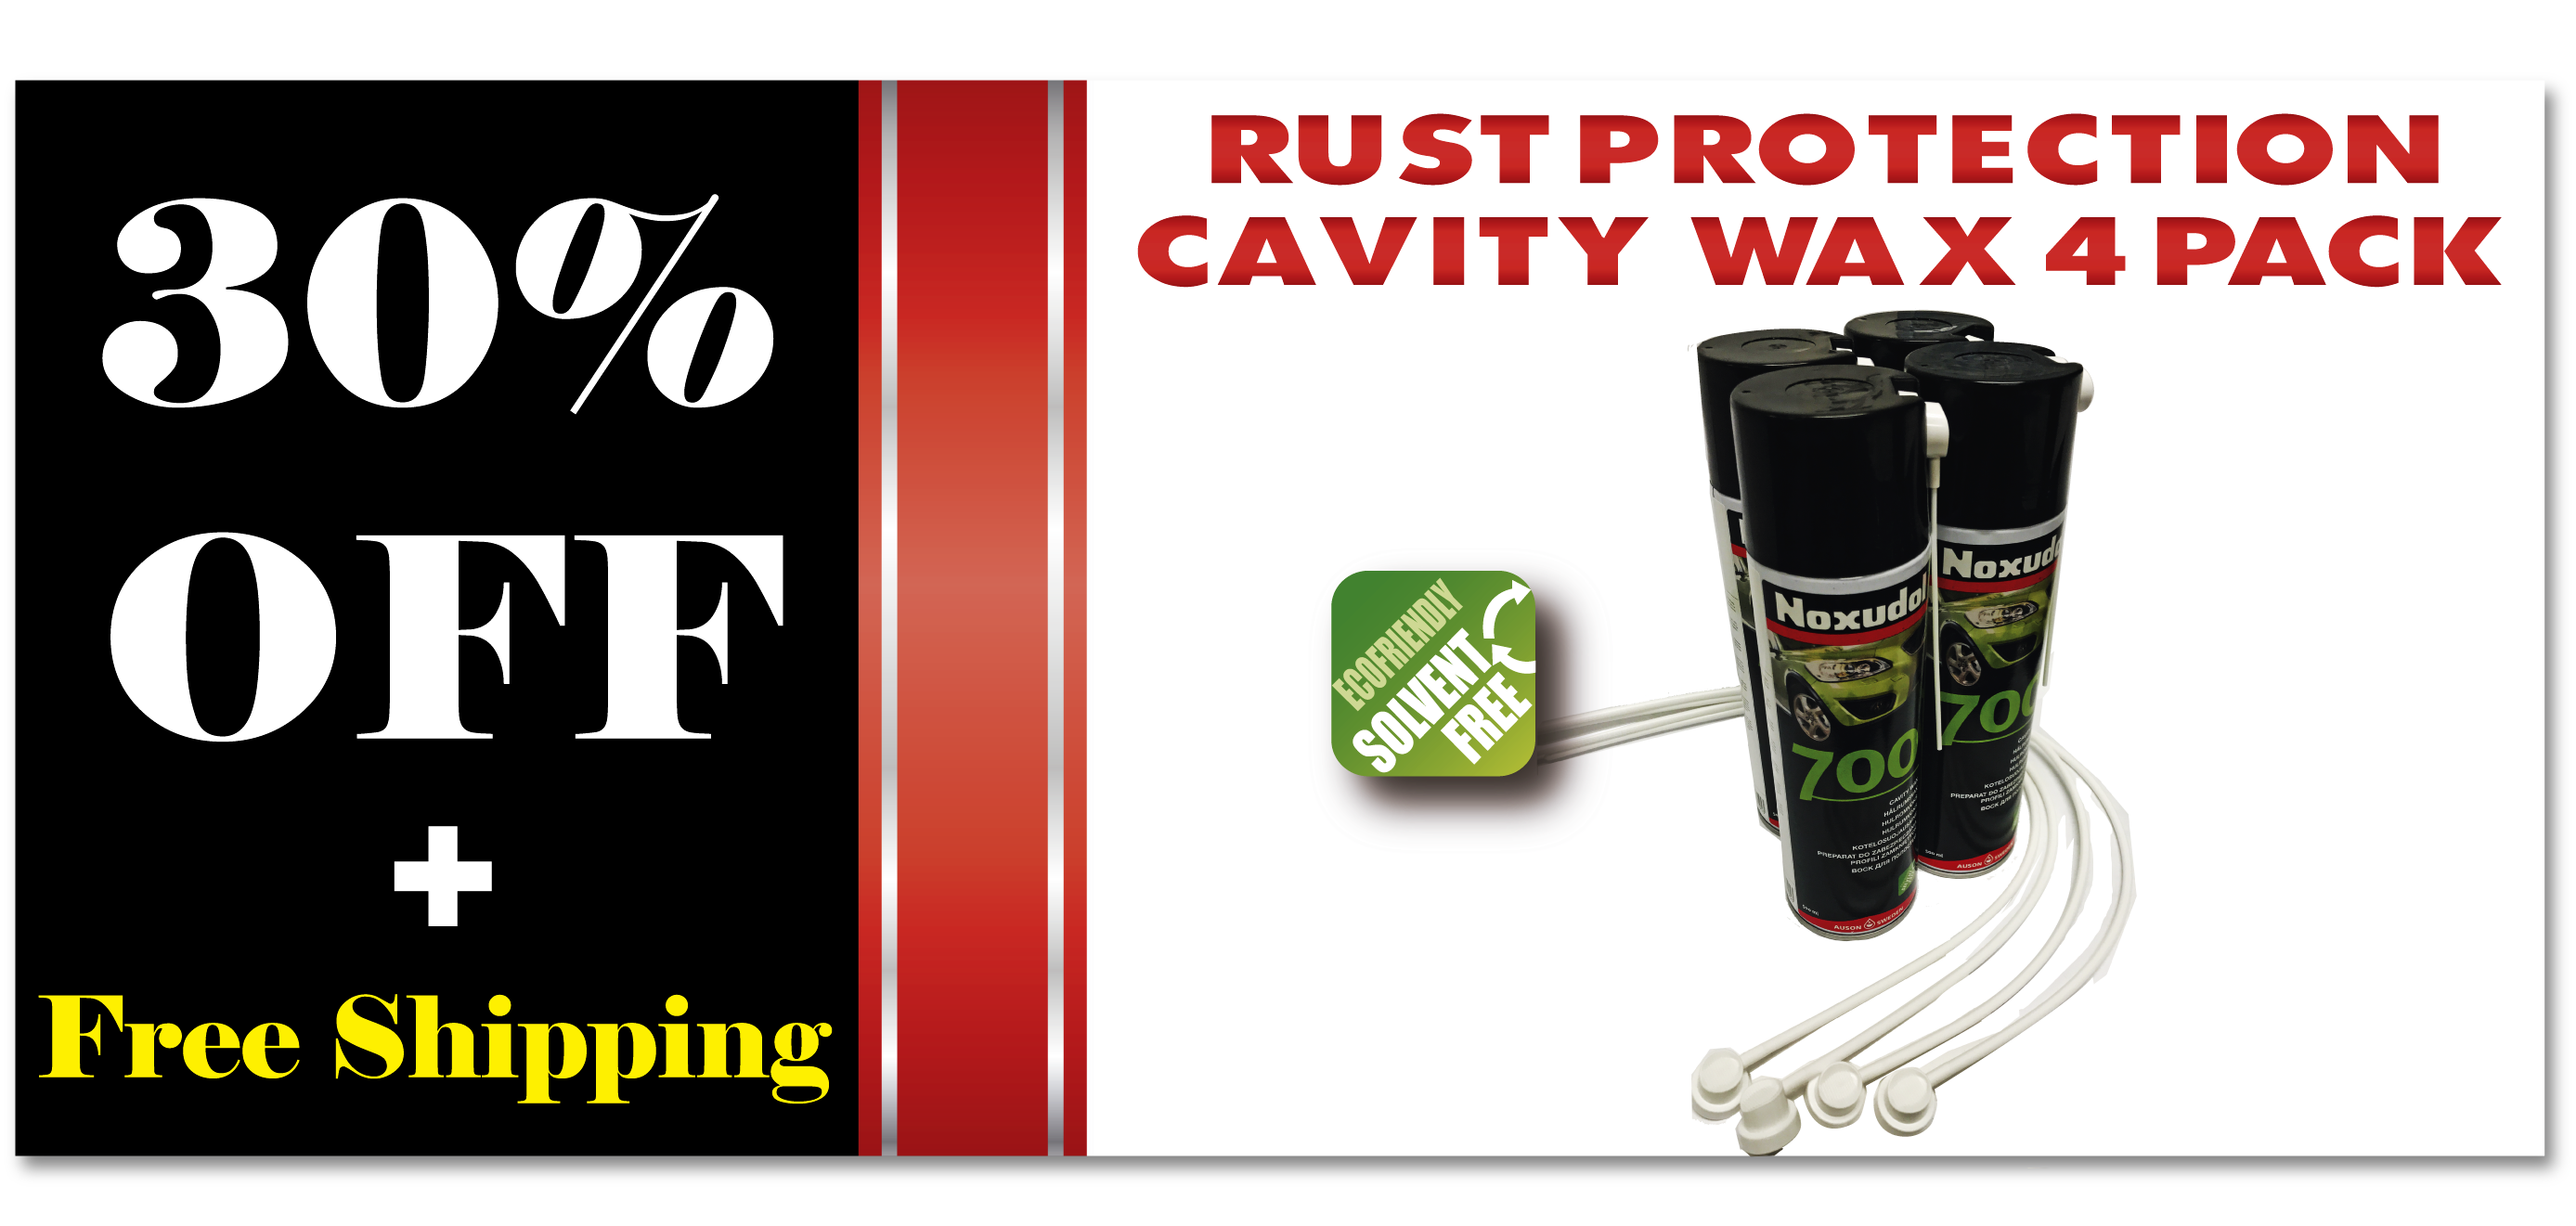 Rust Protection Products | Eco-Friendly Rust Proofing